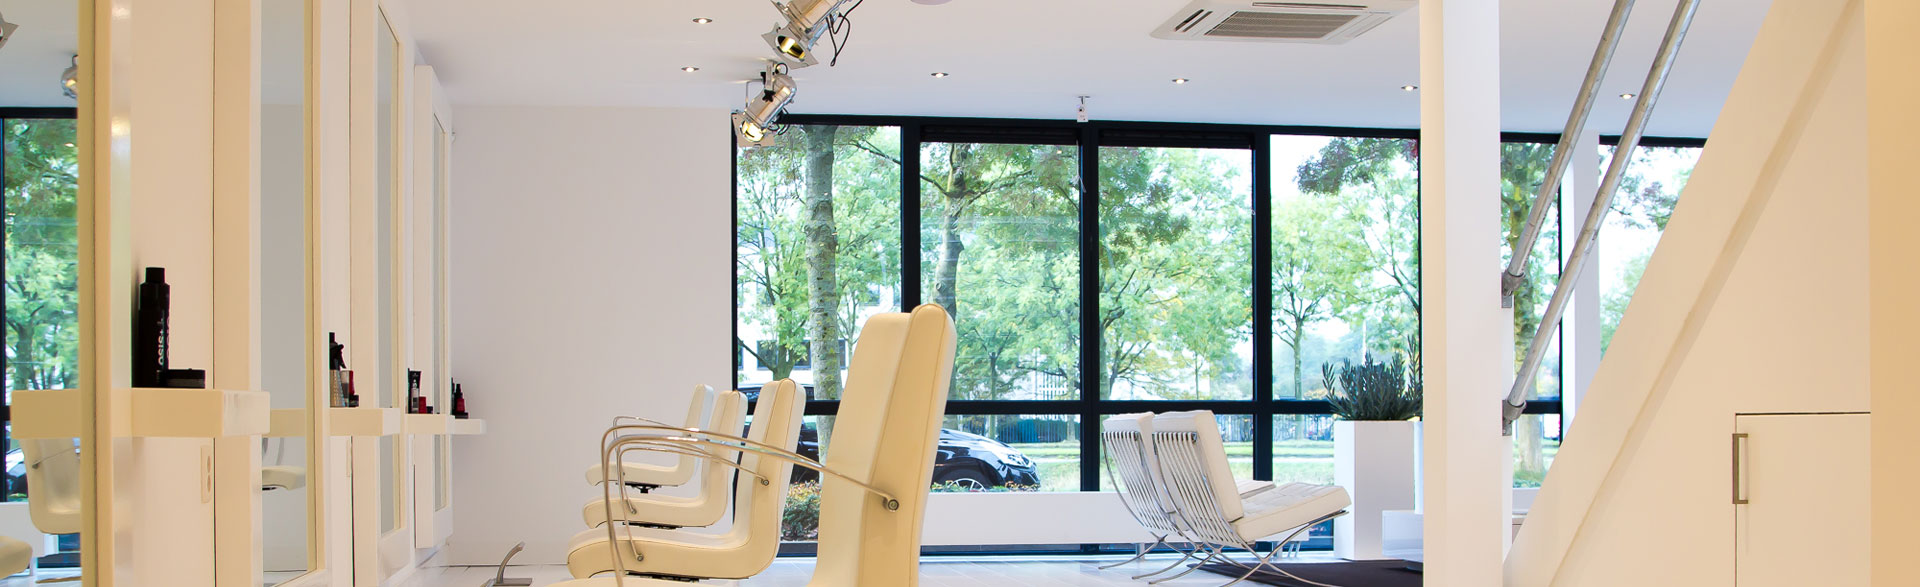 Beauty-by-Roos-salon-Amersfoort-stoelen wit